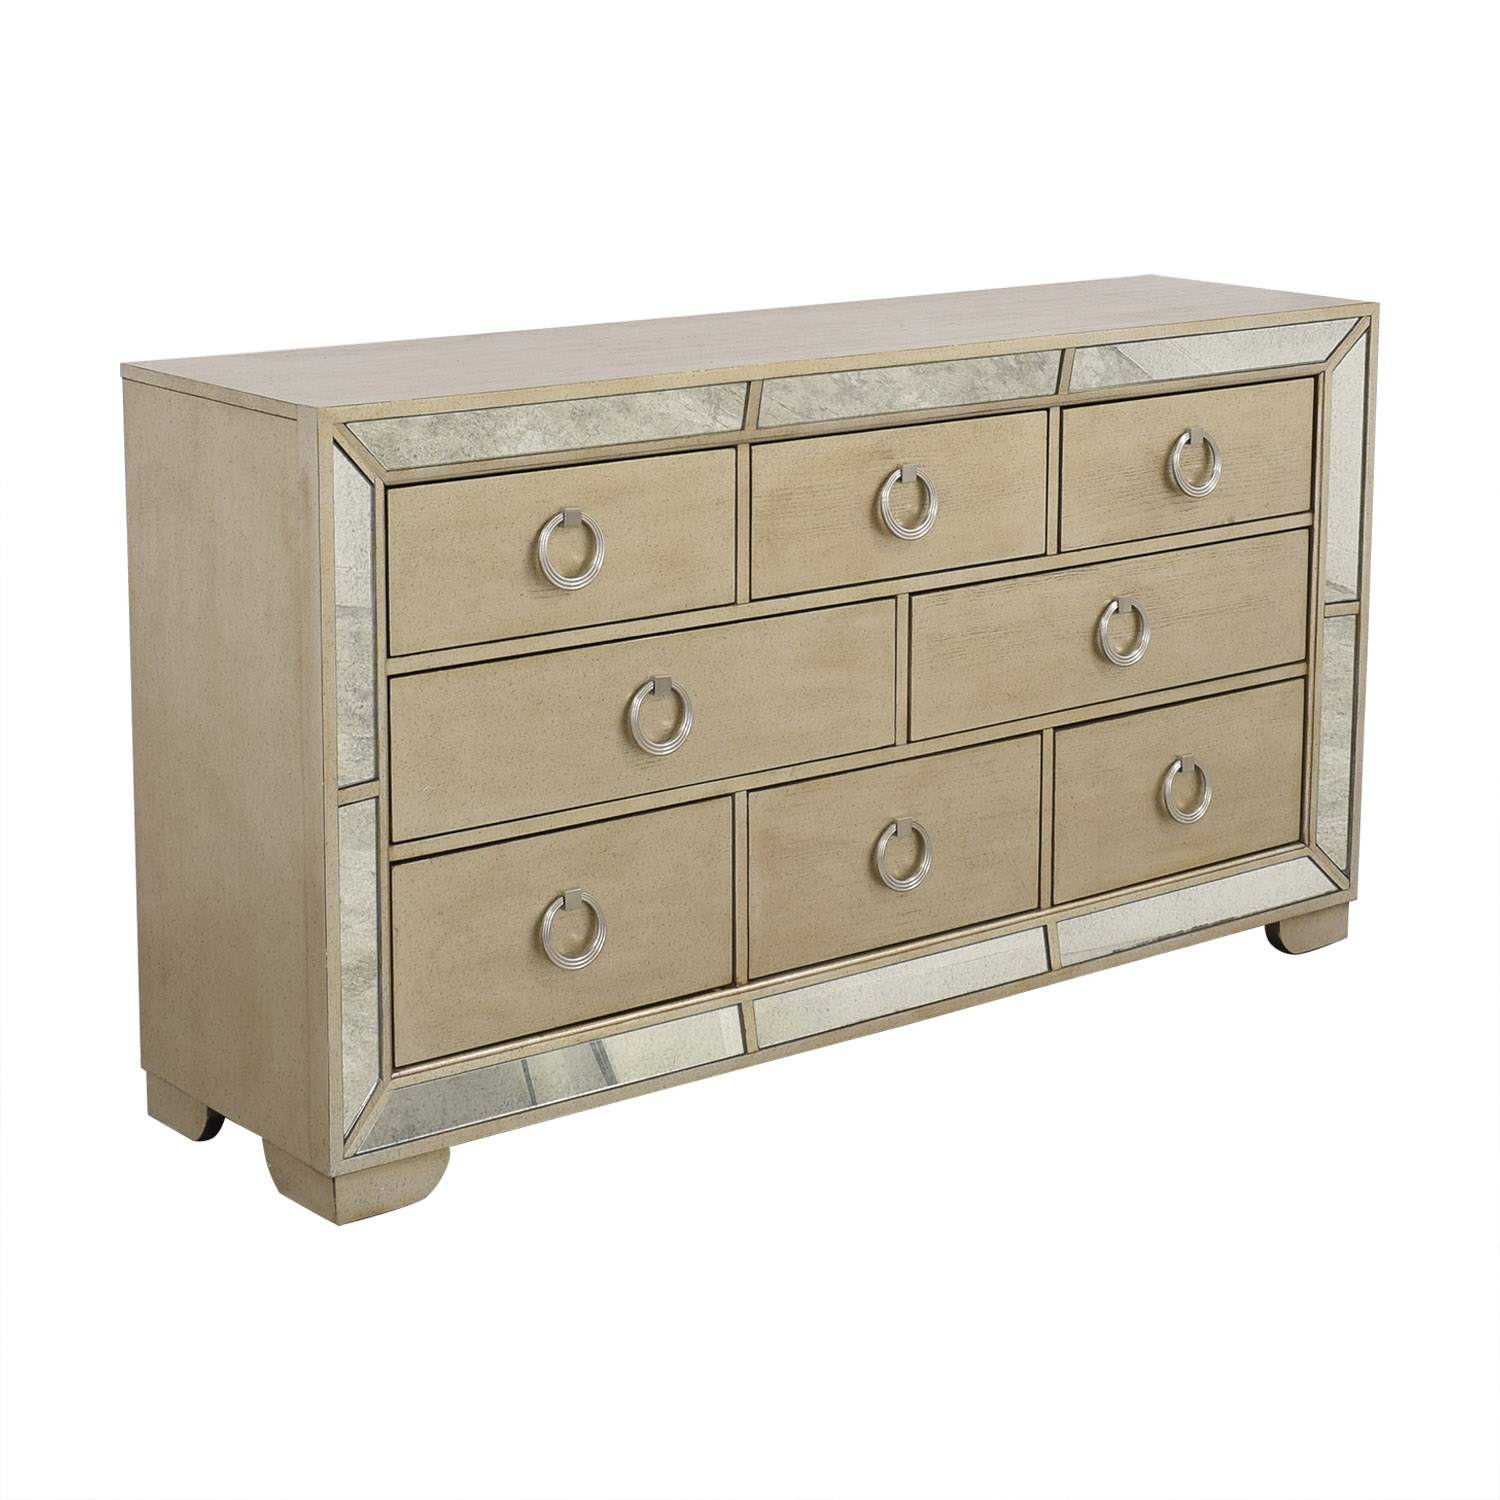 Macy's Macy's Ailey Eight Drawer Dresser Storage